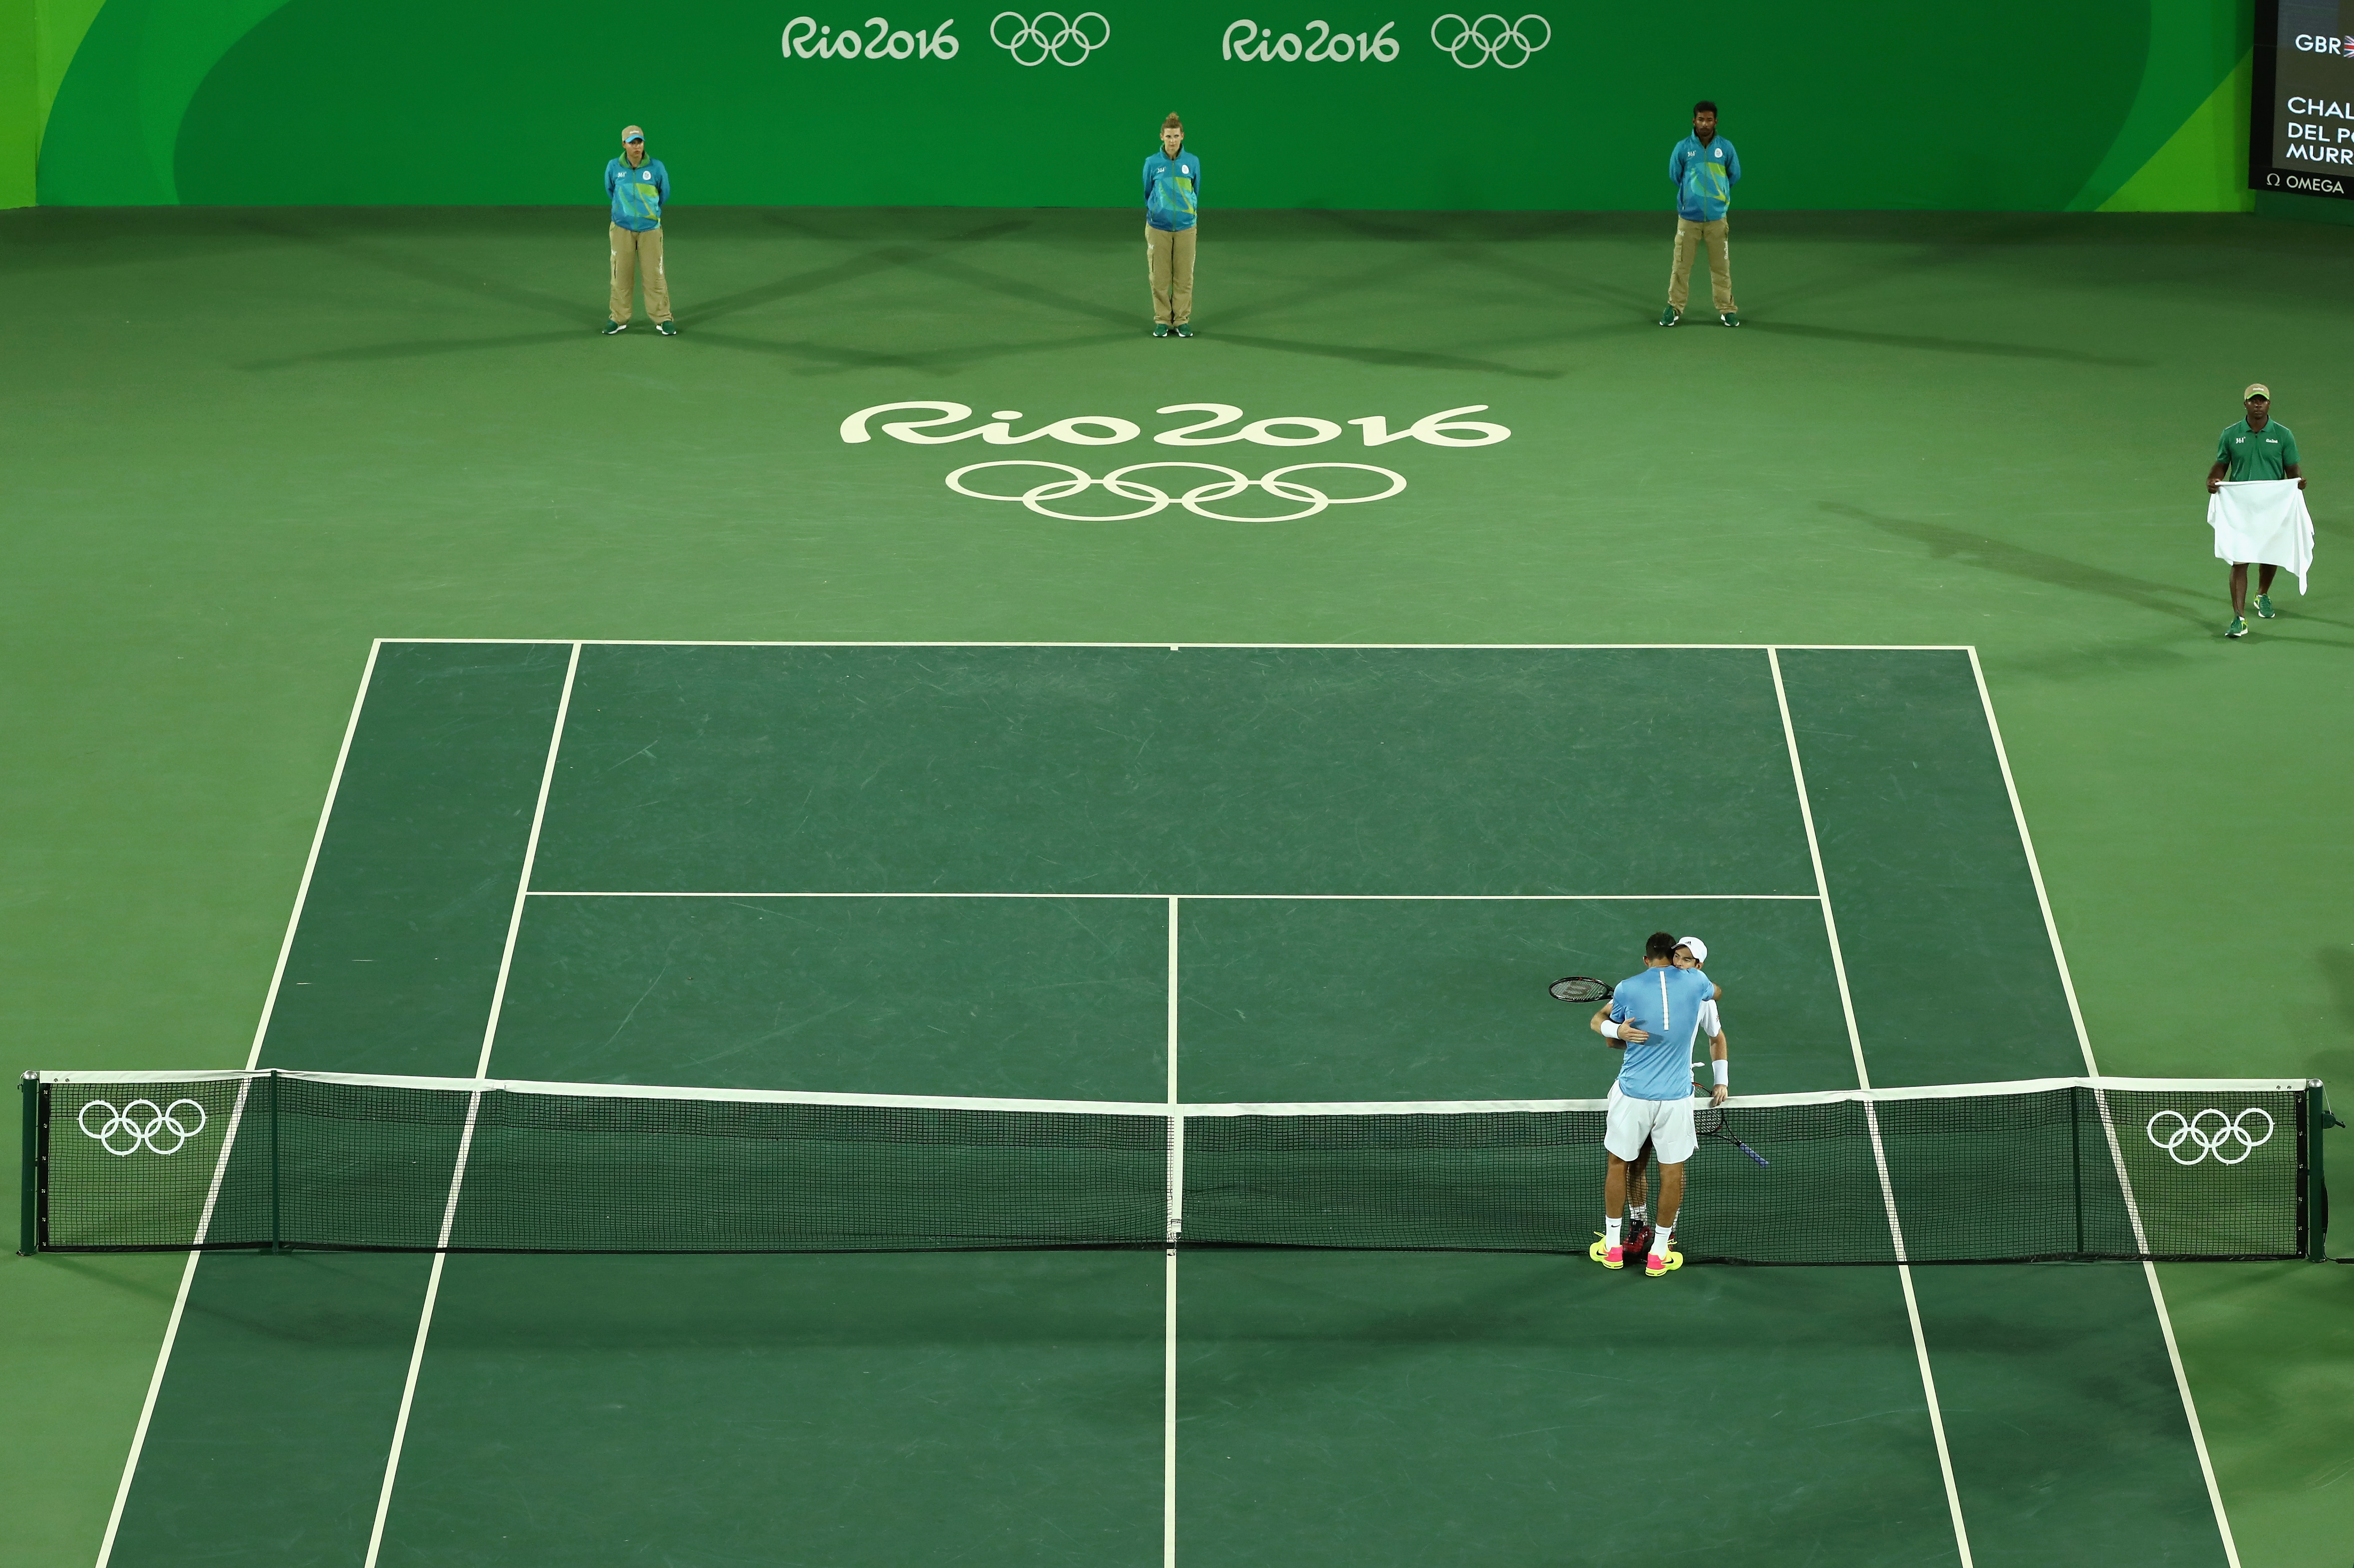 Man uses Olympic tennis court as giant green screen, and we're all winners